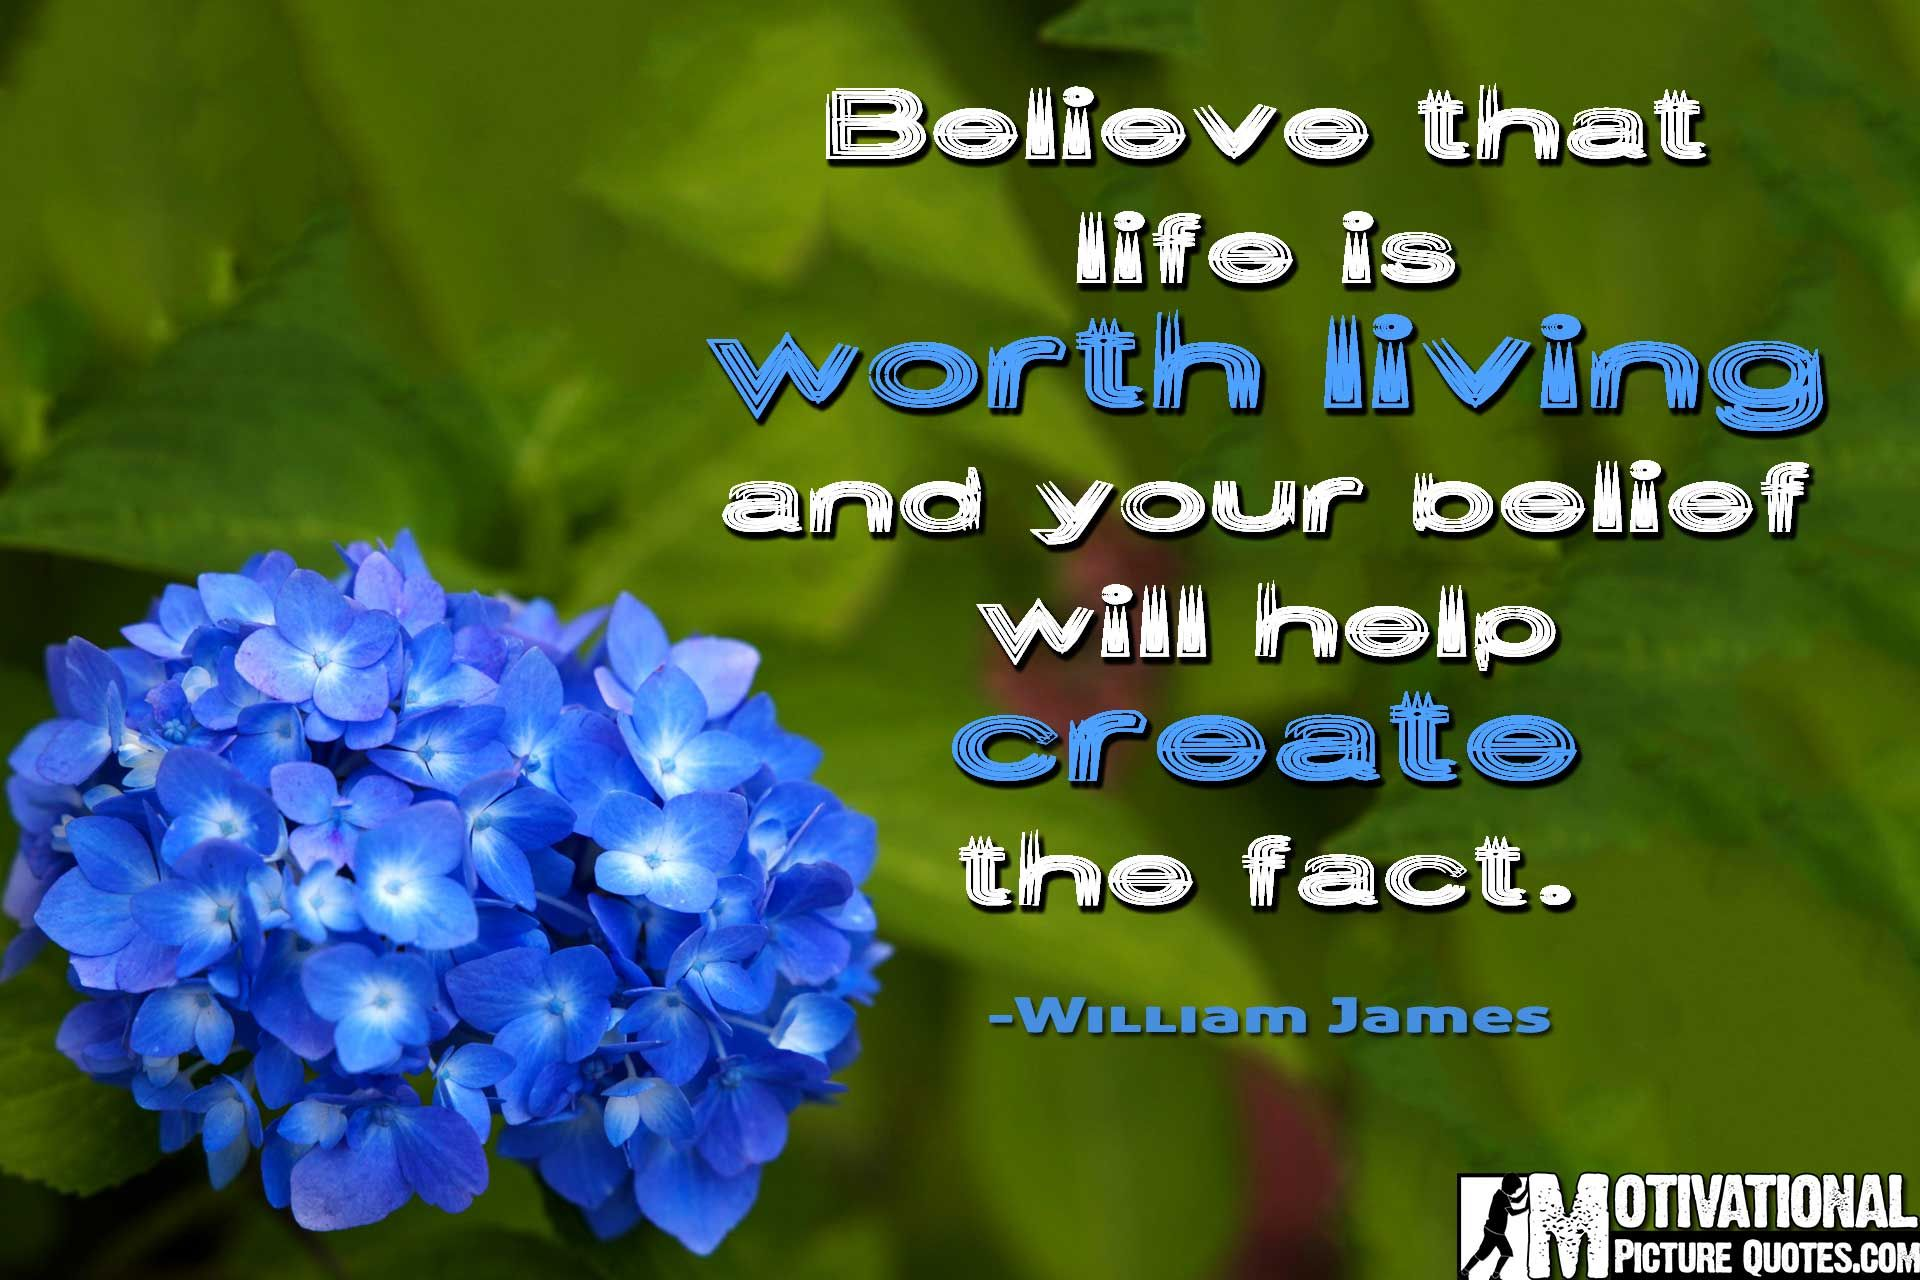 inspiring quotes about positive thinking by William James